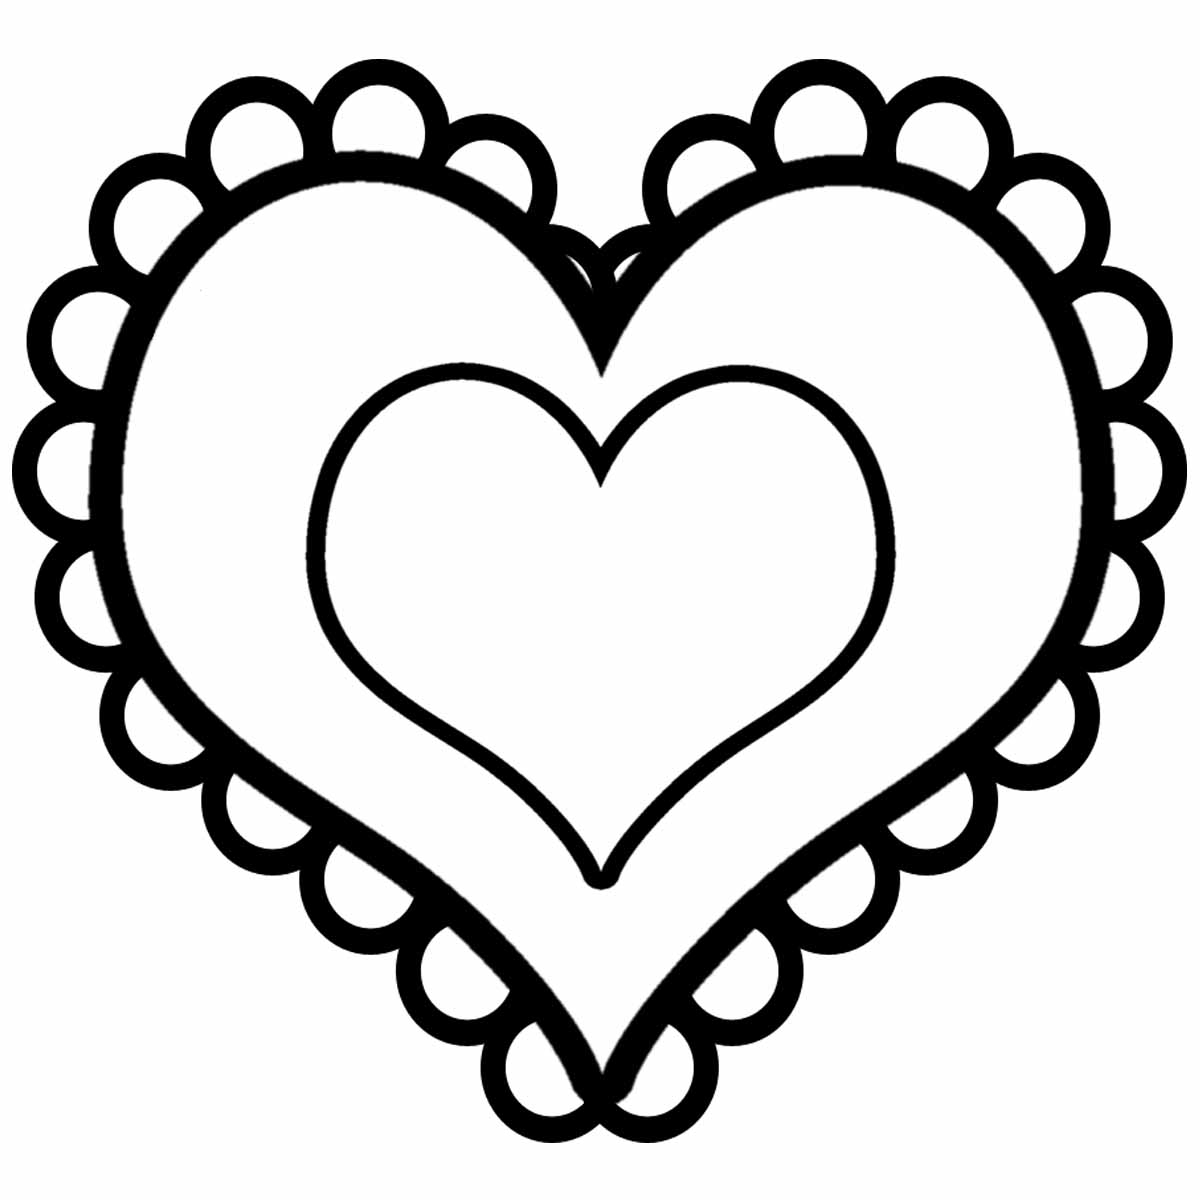 Pink Heart Outline Clipart | Clipart Panda - Free Clipart Images